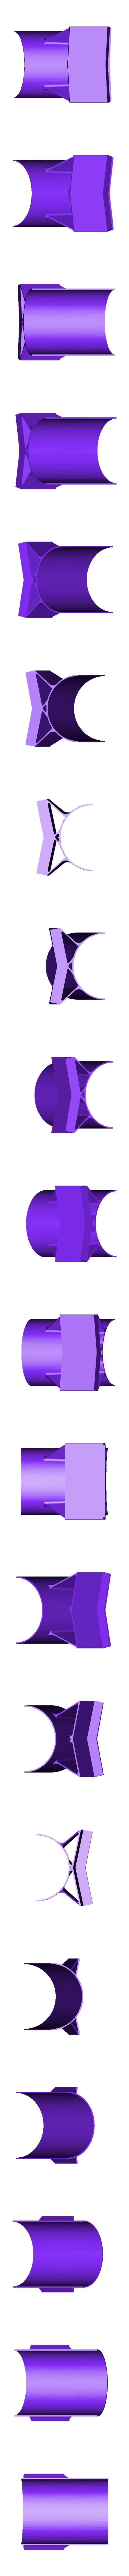 Undercambered_Wing_Rear_Mount.stl Download free STL file Flyer Mk. 1 • 3D printing object, billbo1958